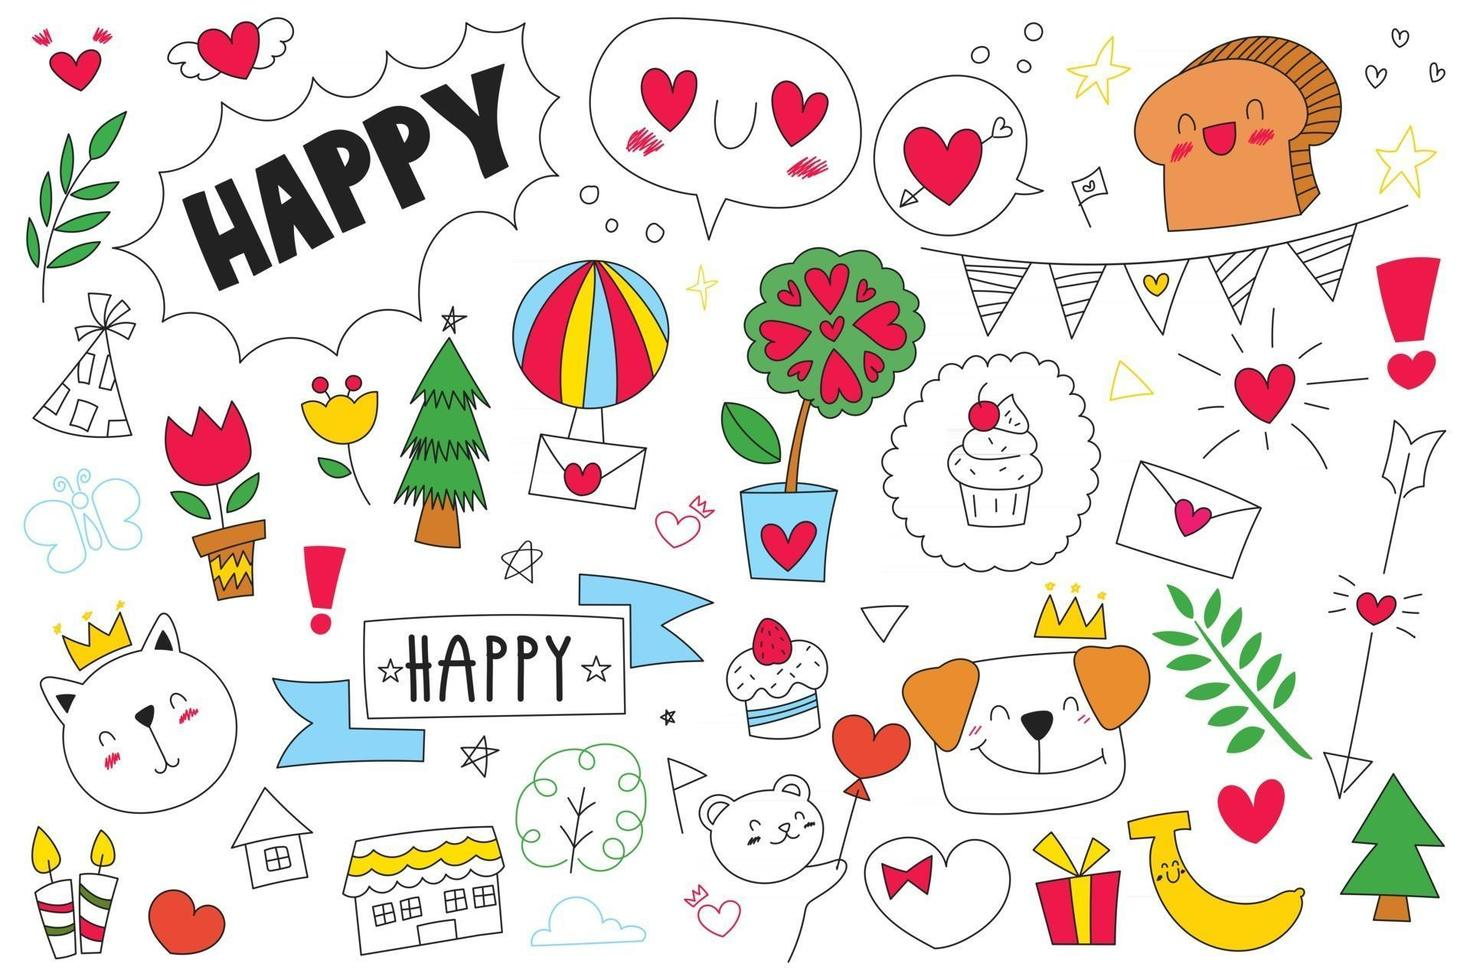 Outline hand drawn doodle set of objects and symbols on Celebration, new year and birthday theme. Vector illustration.